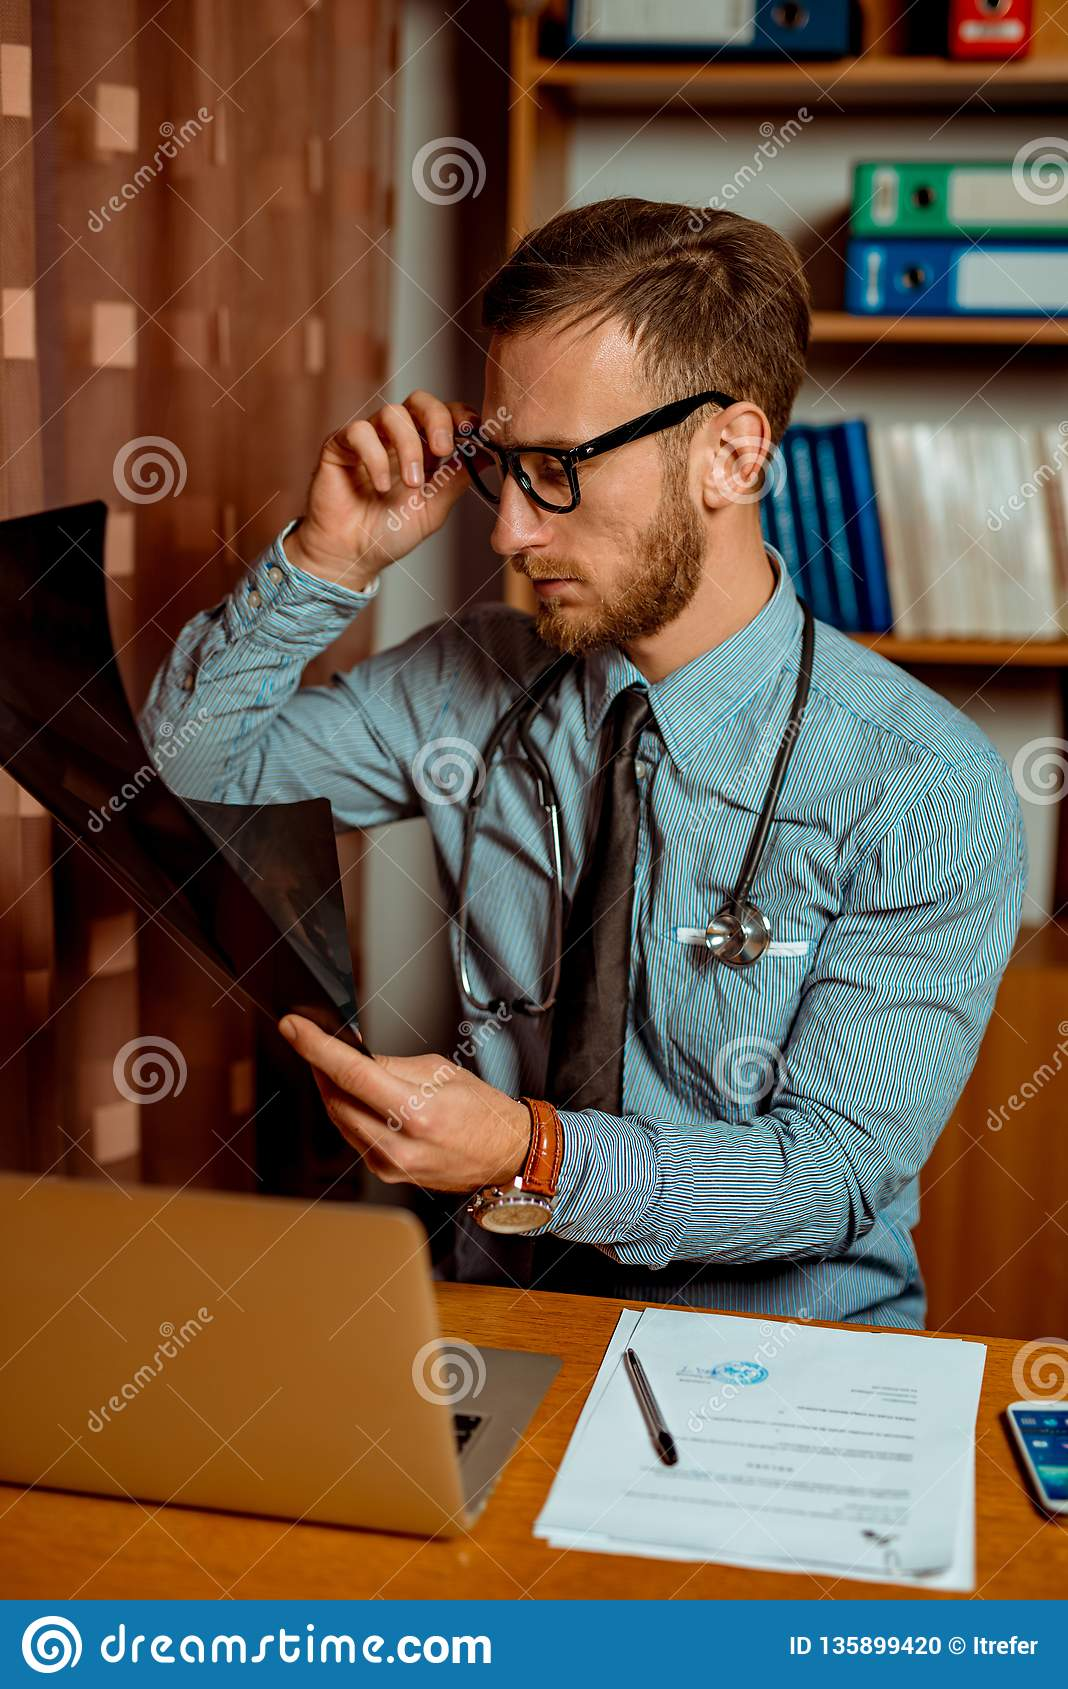 Doctor Observing X-Ray